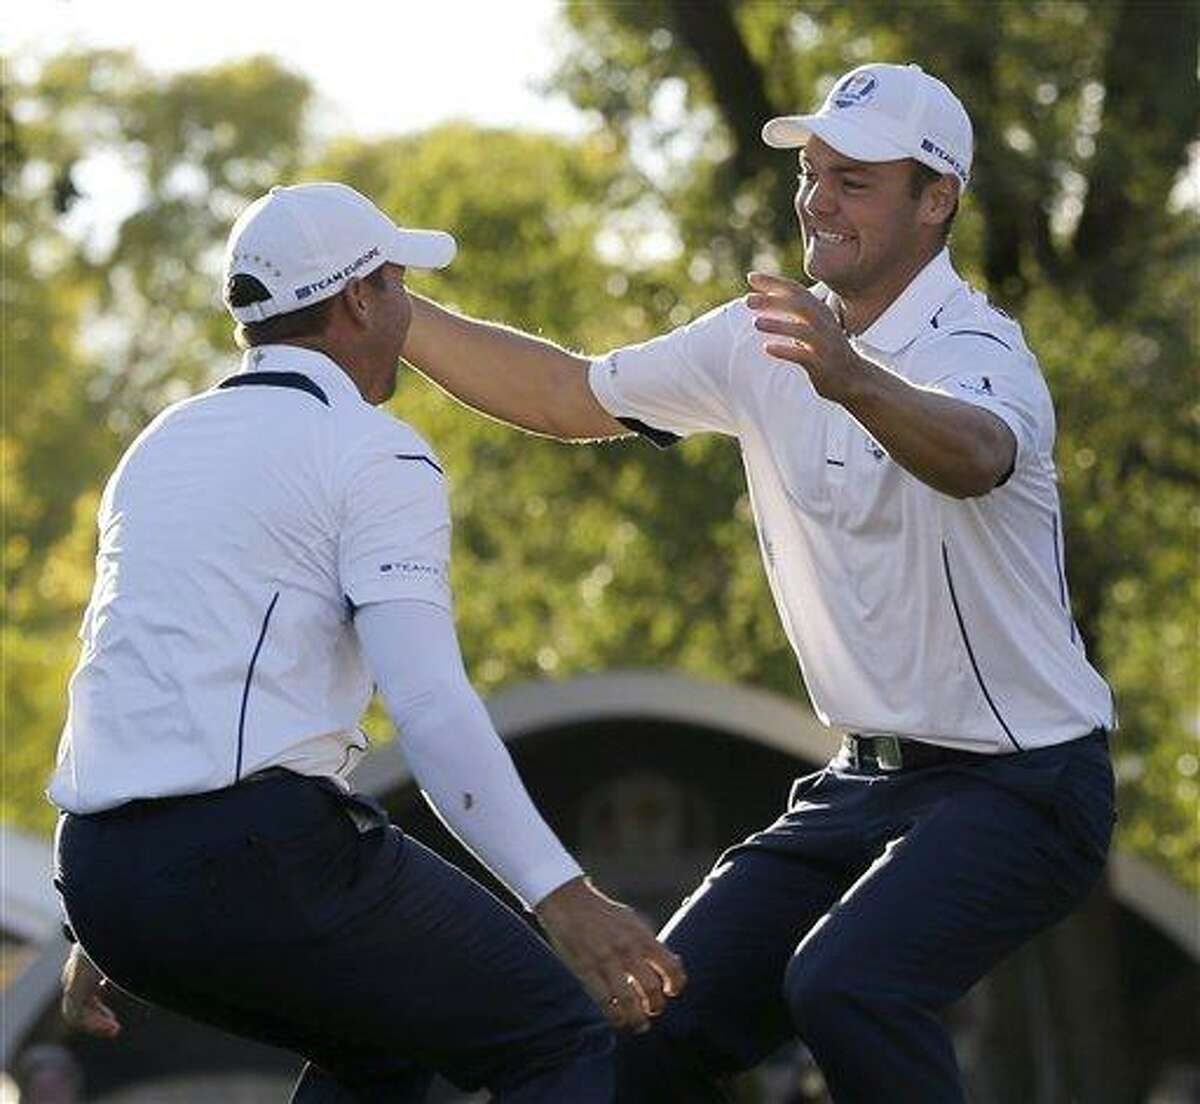 Europe's Martin Kaymer leaps into the arms of teammate Sergio Garcia after winning the Ryder Cup PGA golf tournament Sunday, Sept. 30, 2012, at the Medinah Country Club in Medinah, Ill. (AP Photo/David J. Phillip)